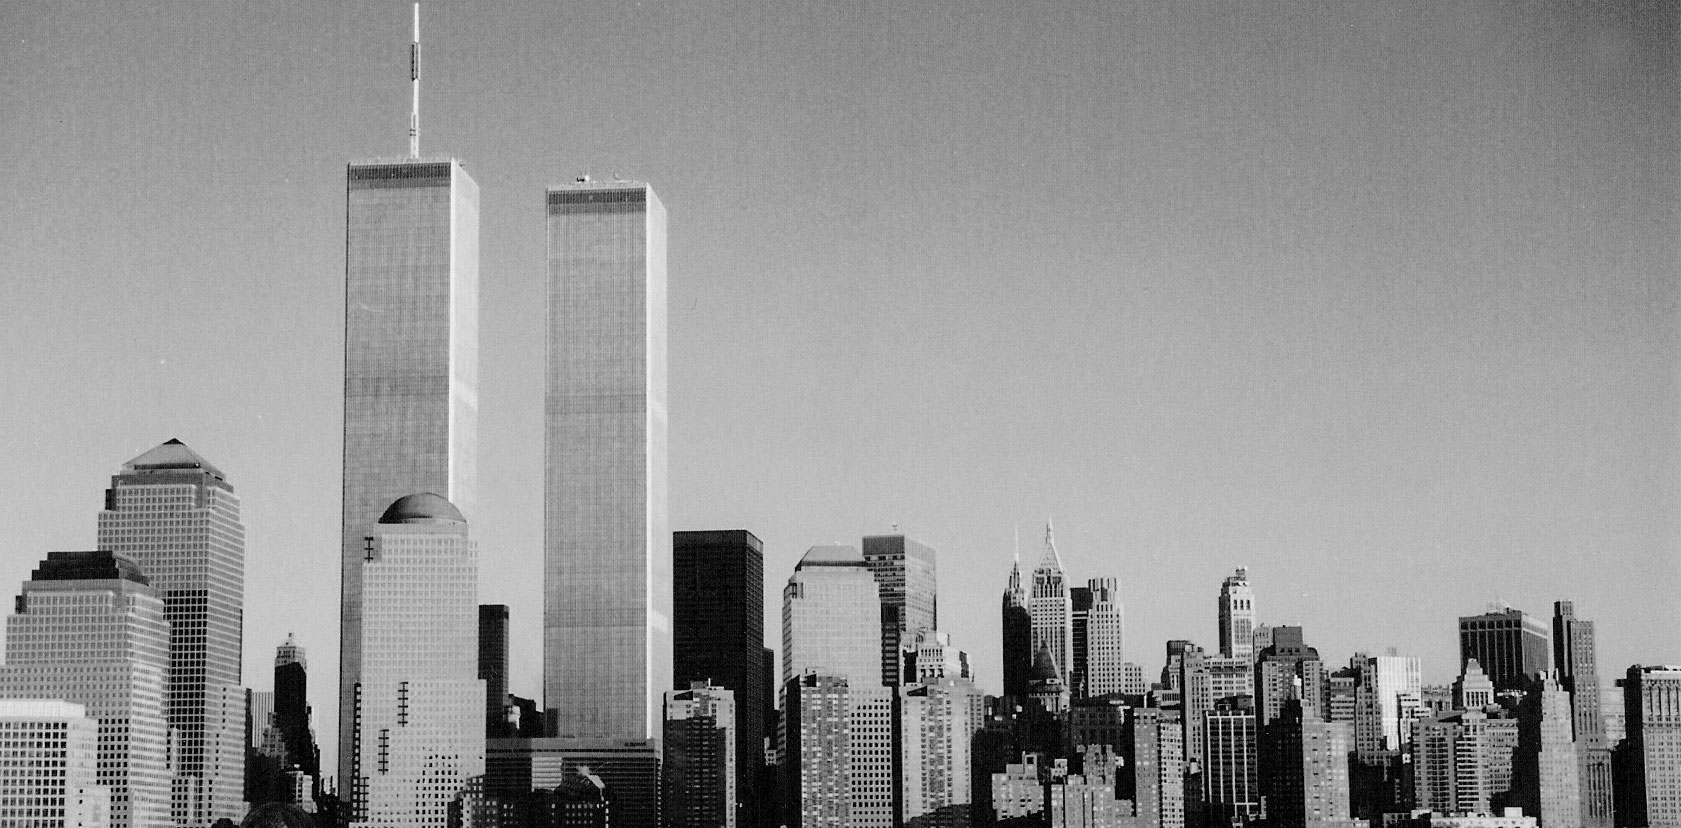 DESTINATION : World Trade Center Towers – PRE 911